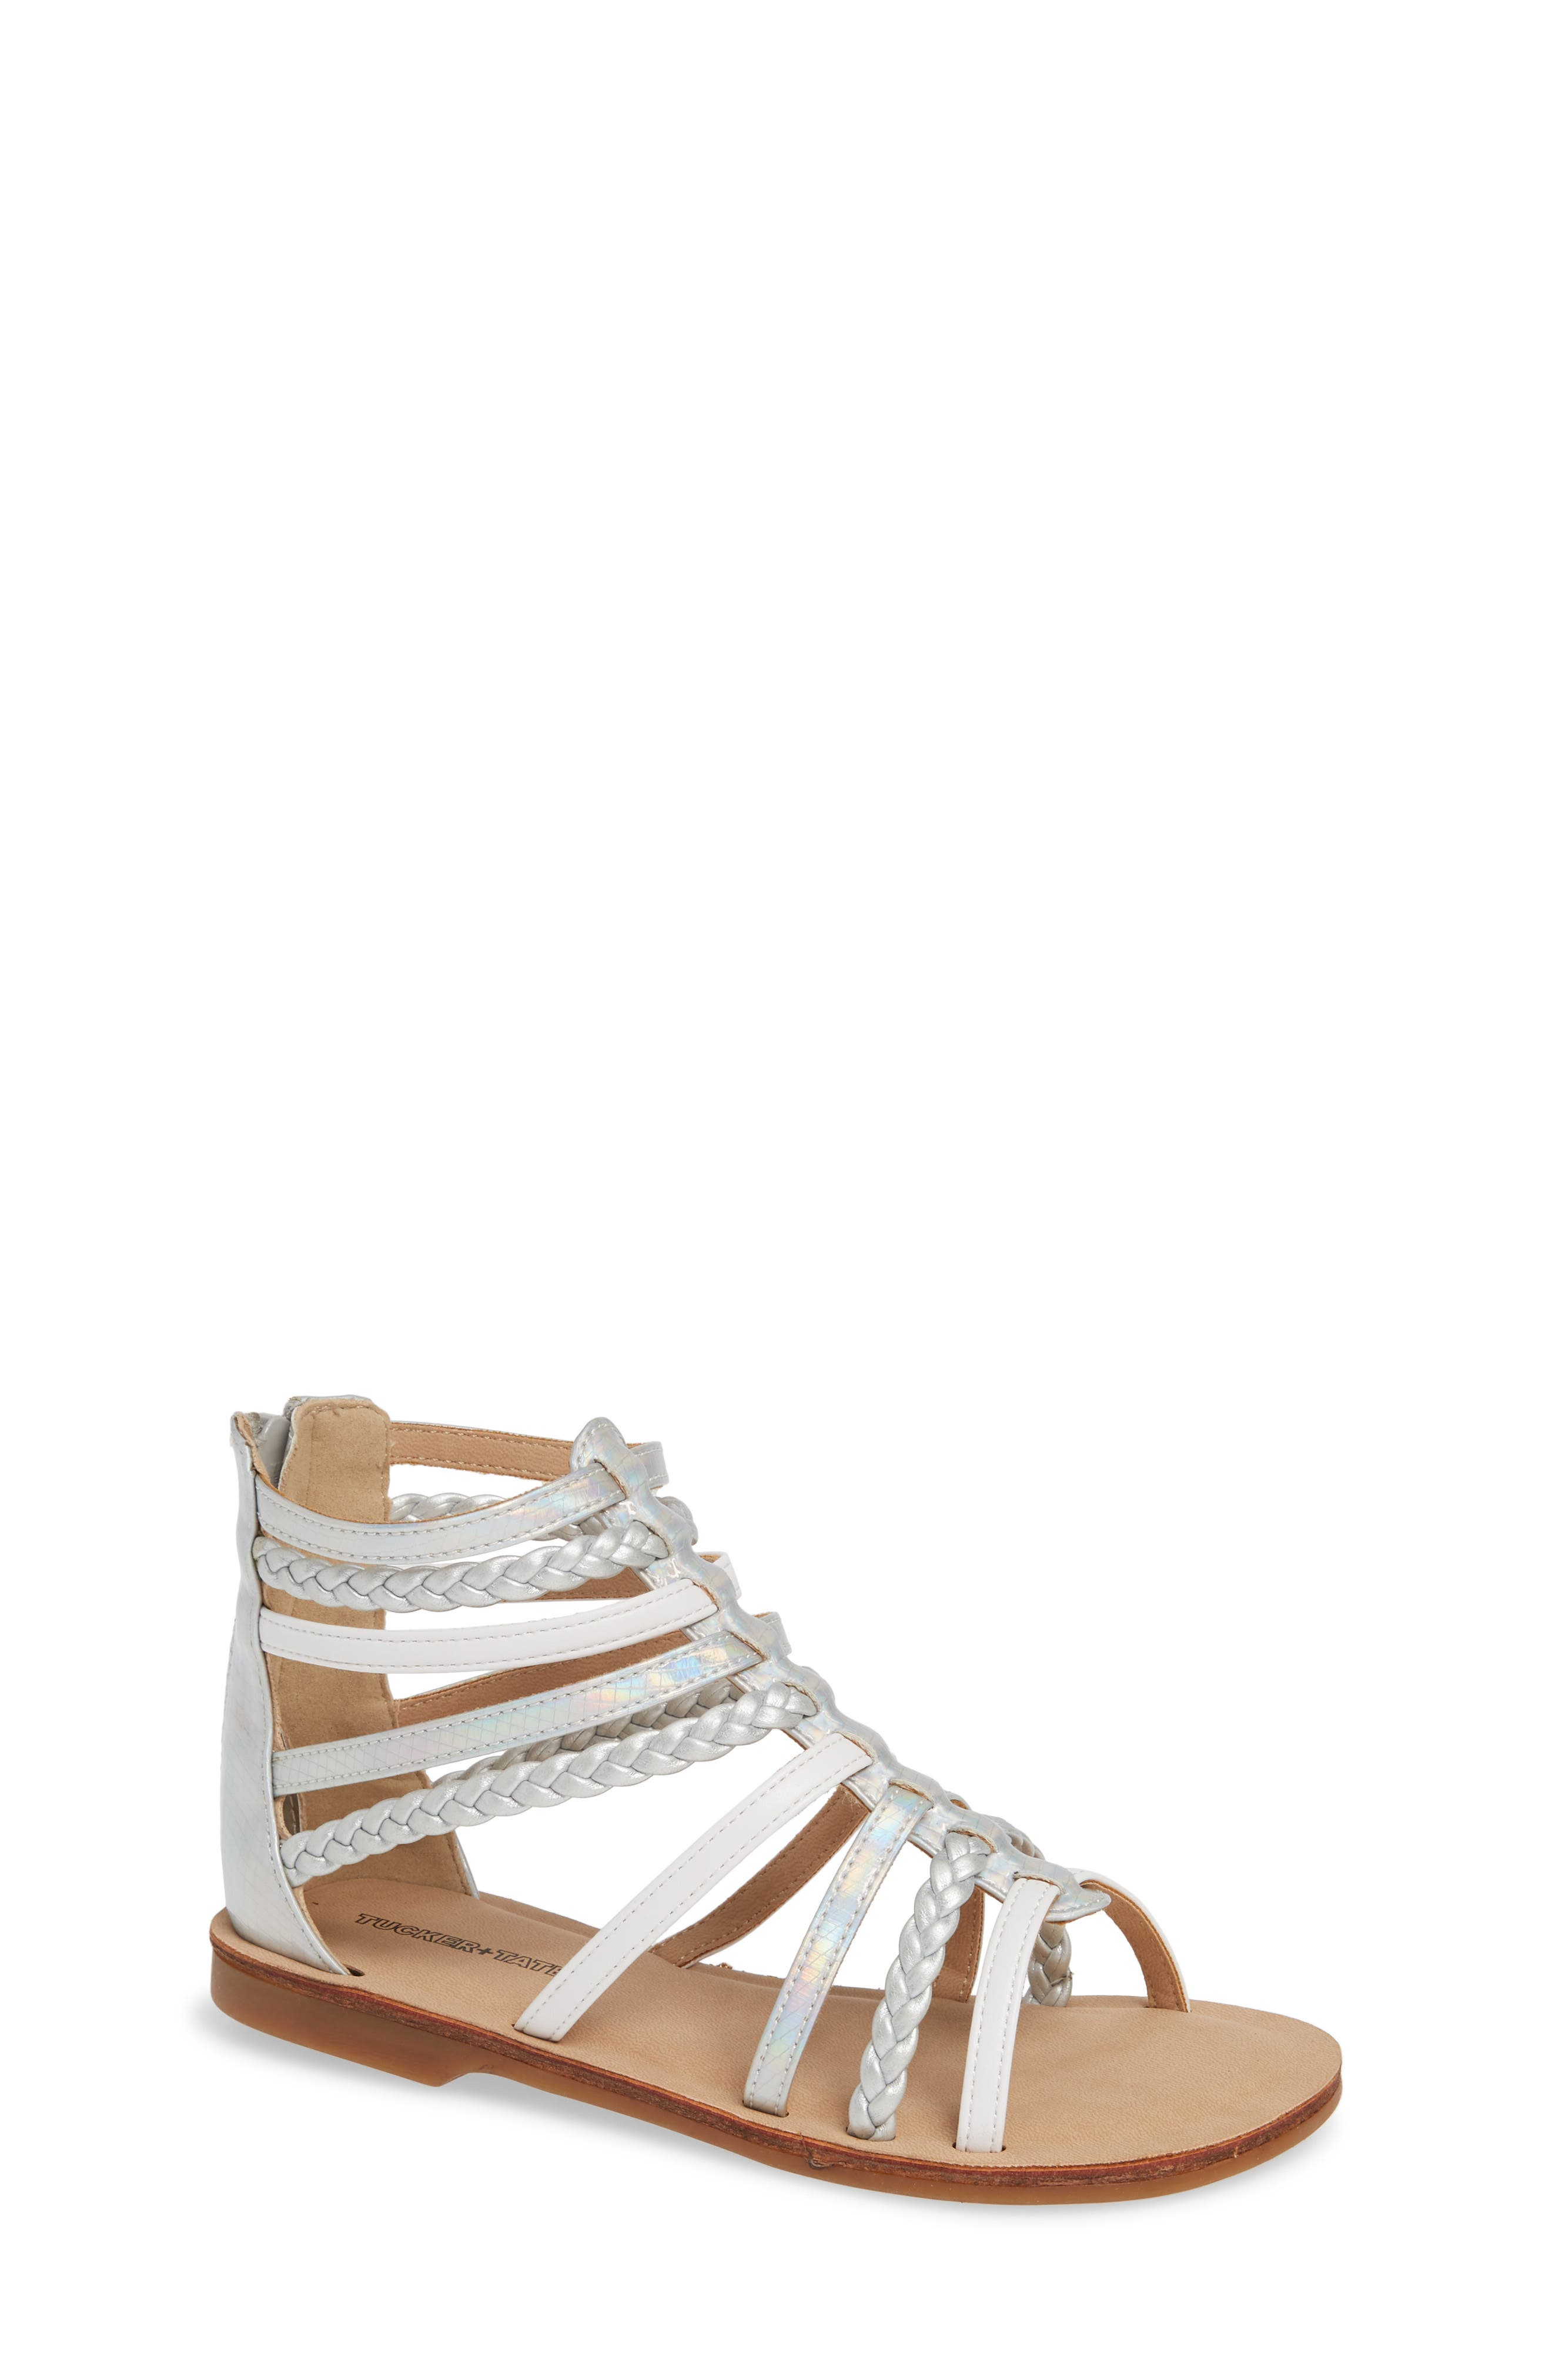 Sonja Braided Gladiator Sandal,                             Main thumbnail 1, color,                             WHITE/SILVER FAUX LEATHER